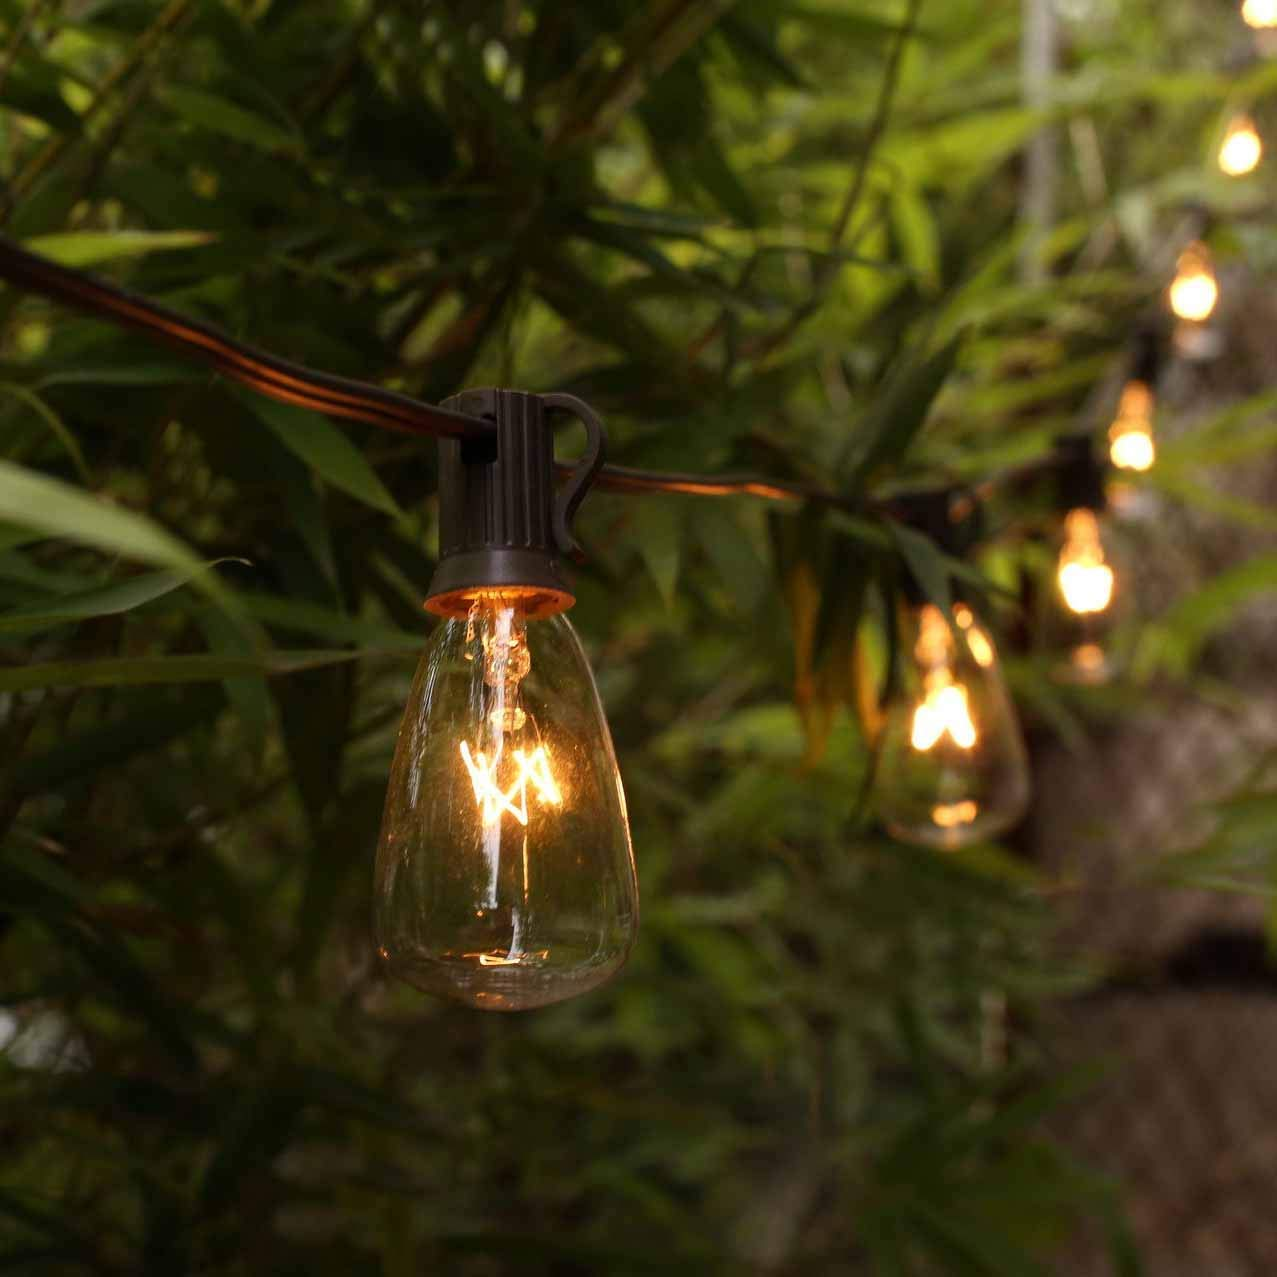 Patio String Lights Outdoor Edison Bulb Hanging Decor Featured Image